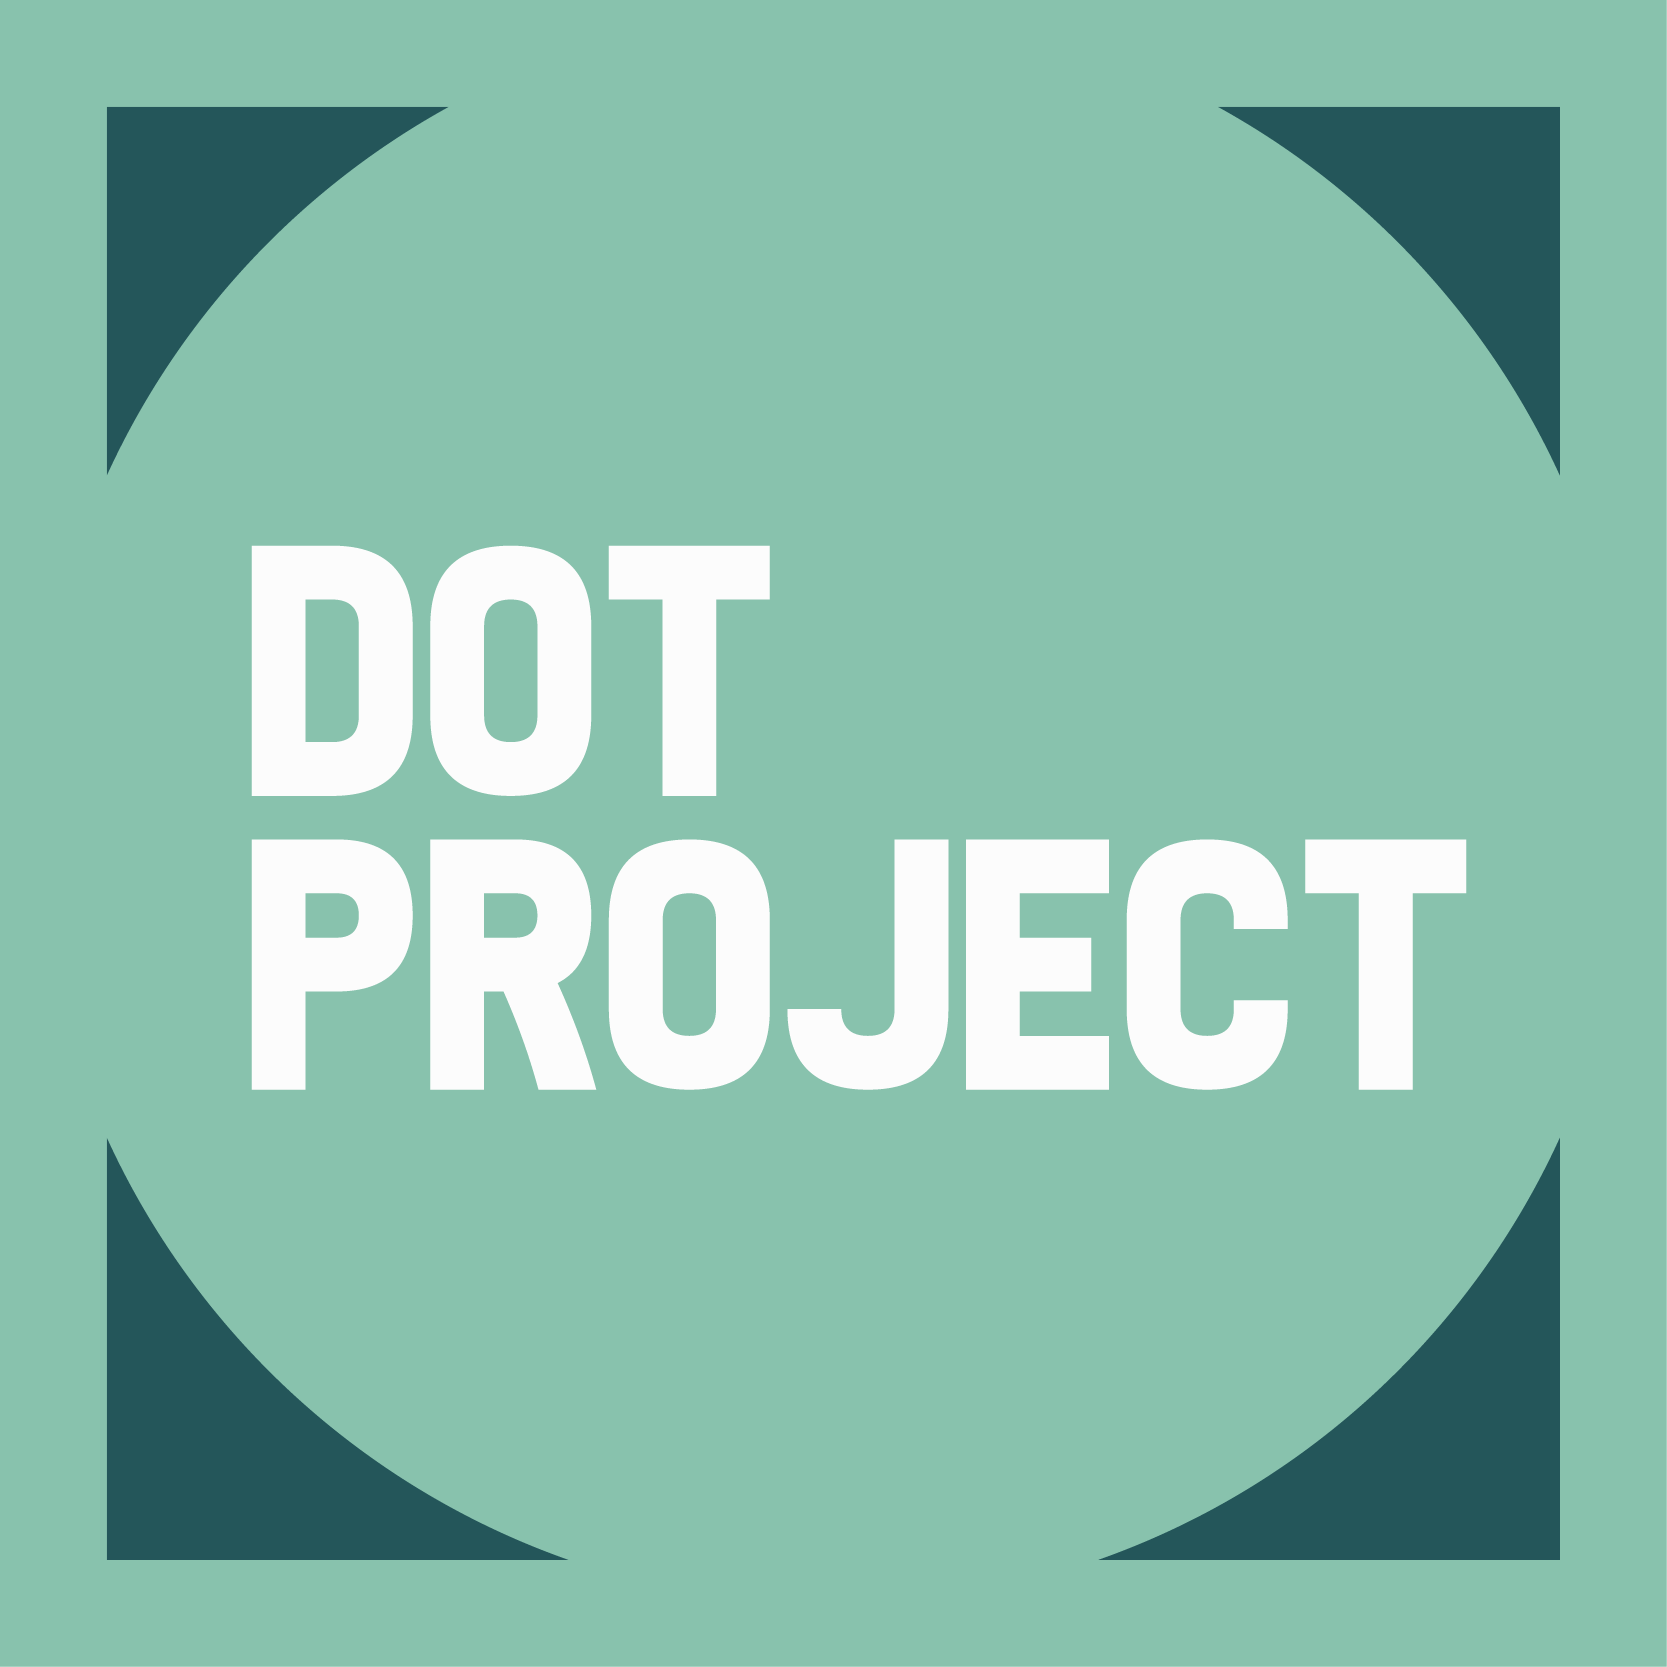 Annie and Cat at Dot Project can help with all your digital needs!